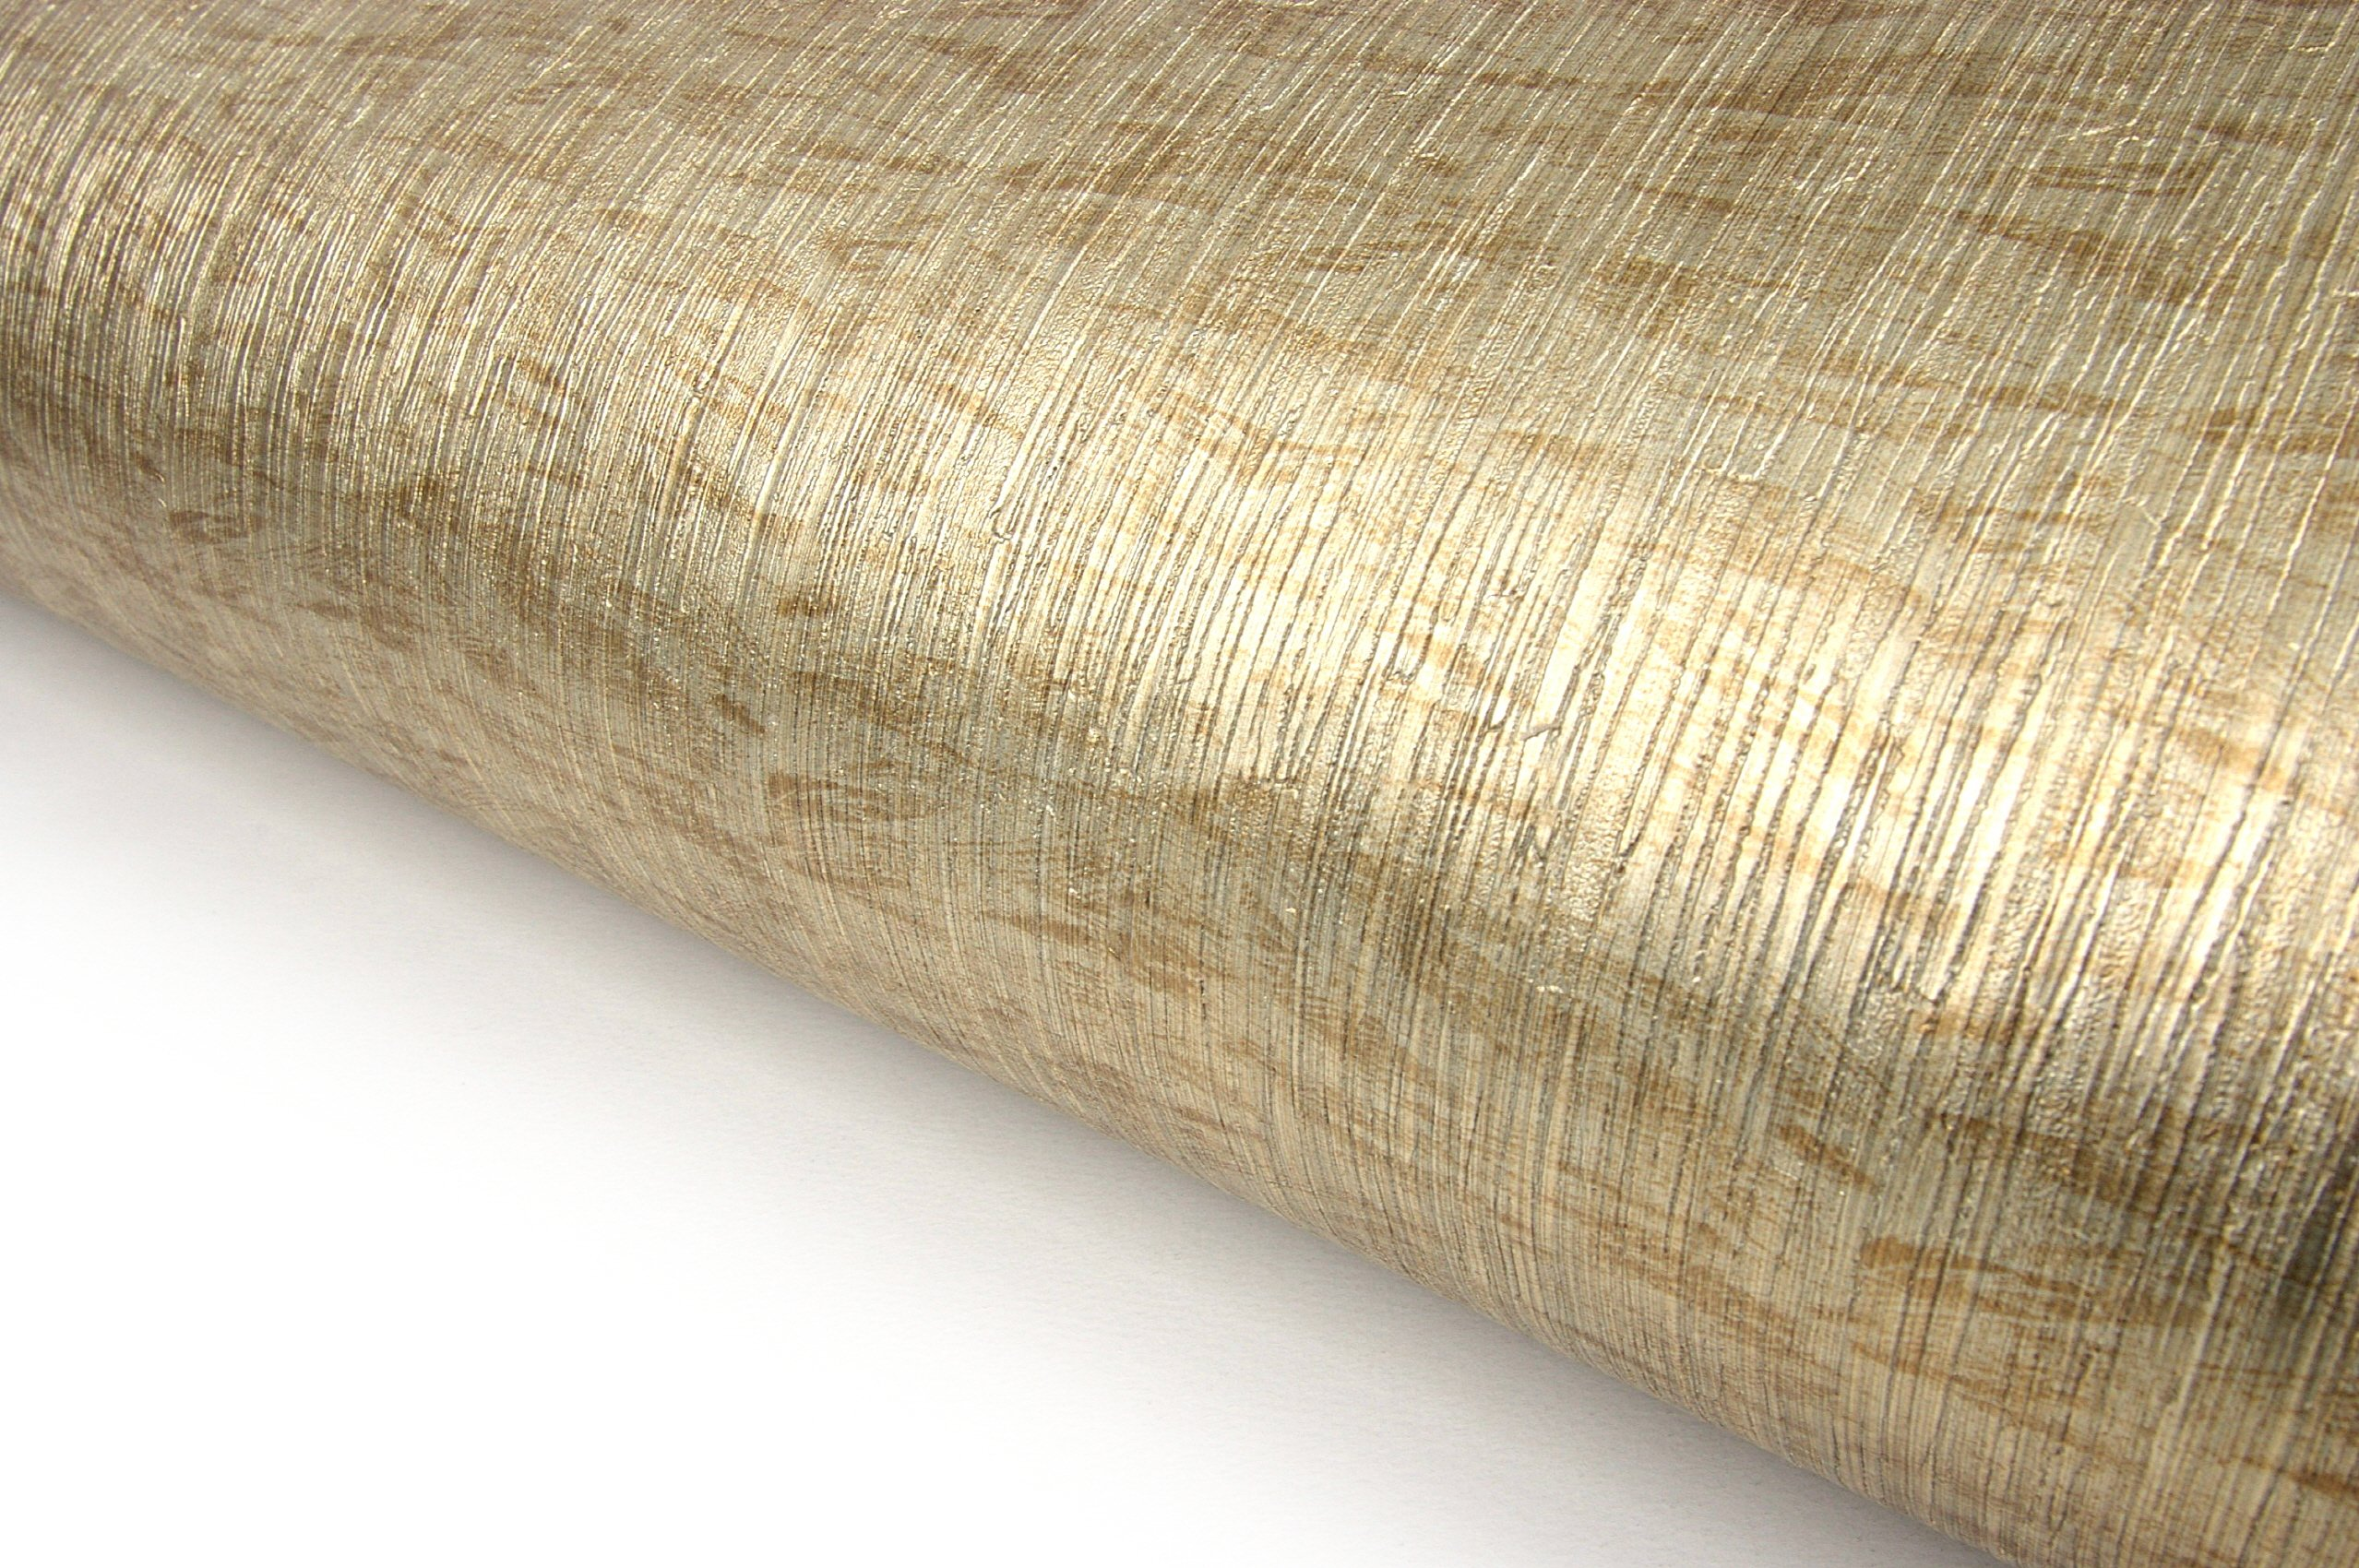 Wood Pattern Texture Contact Paper Film Vinyl Self Adhesive Peel-Stick Removable (VBS872(Luxury))